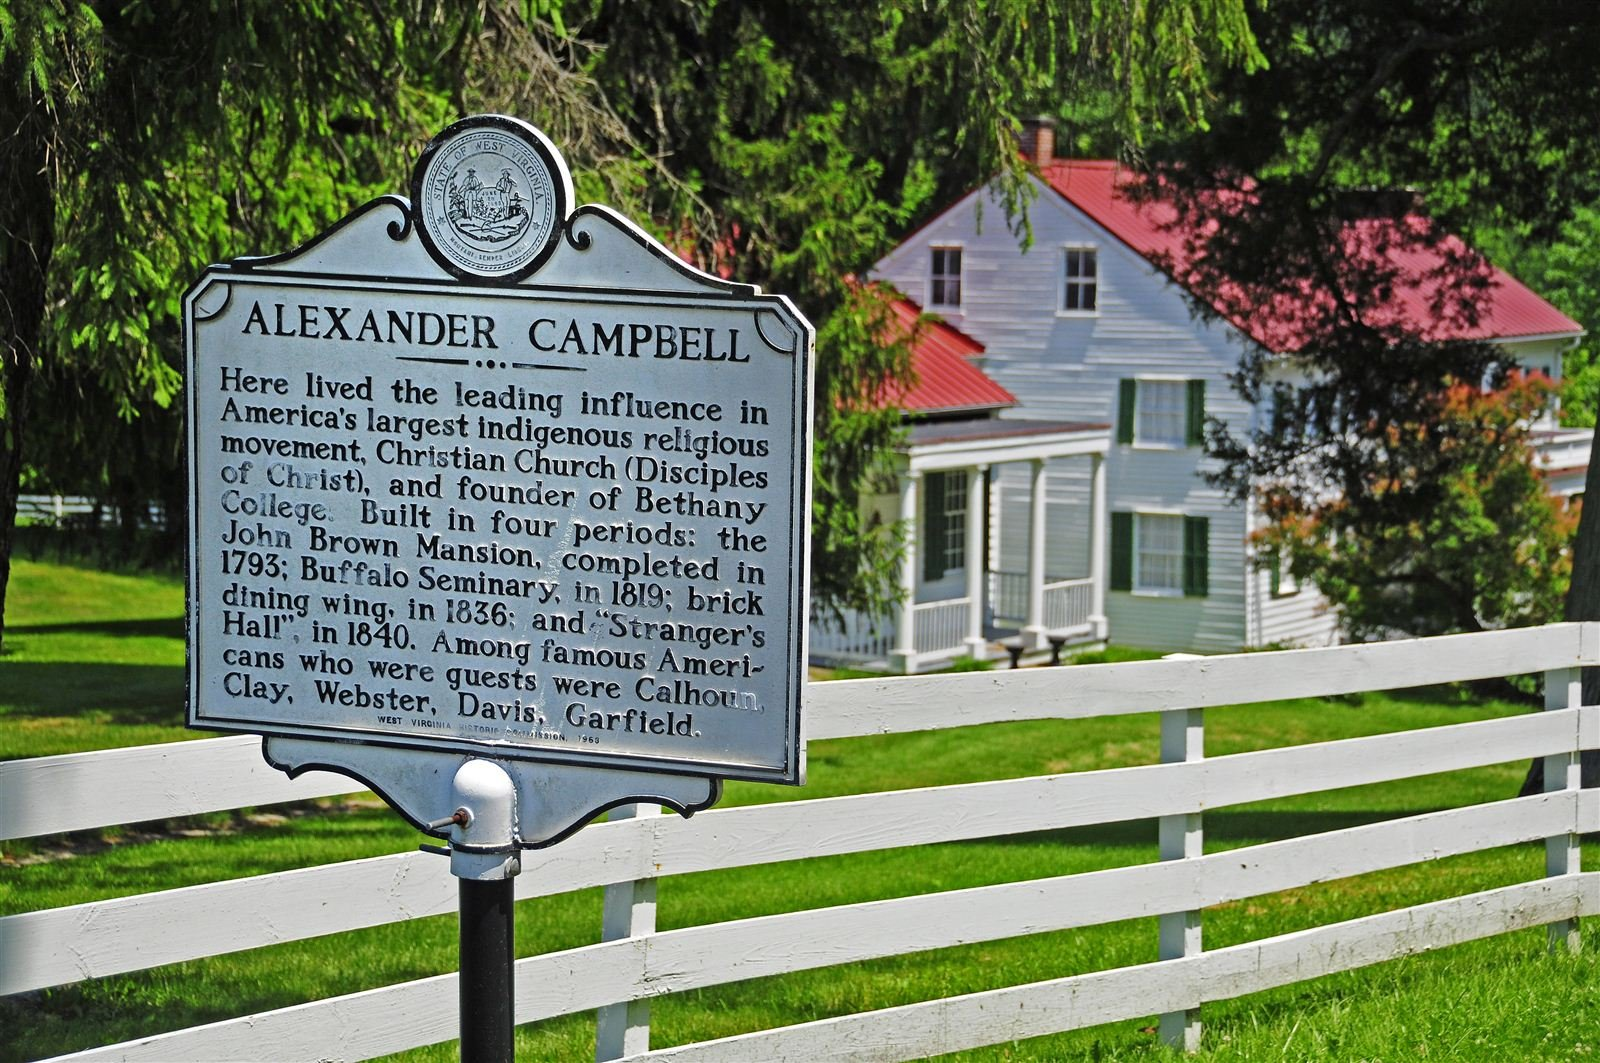 Alexander Campbell historical marker. It is located near the Campbell Mansion.